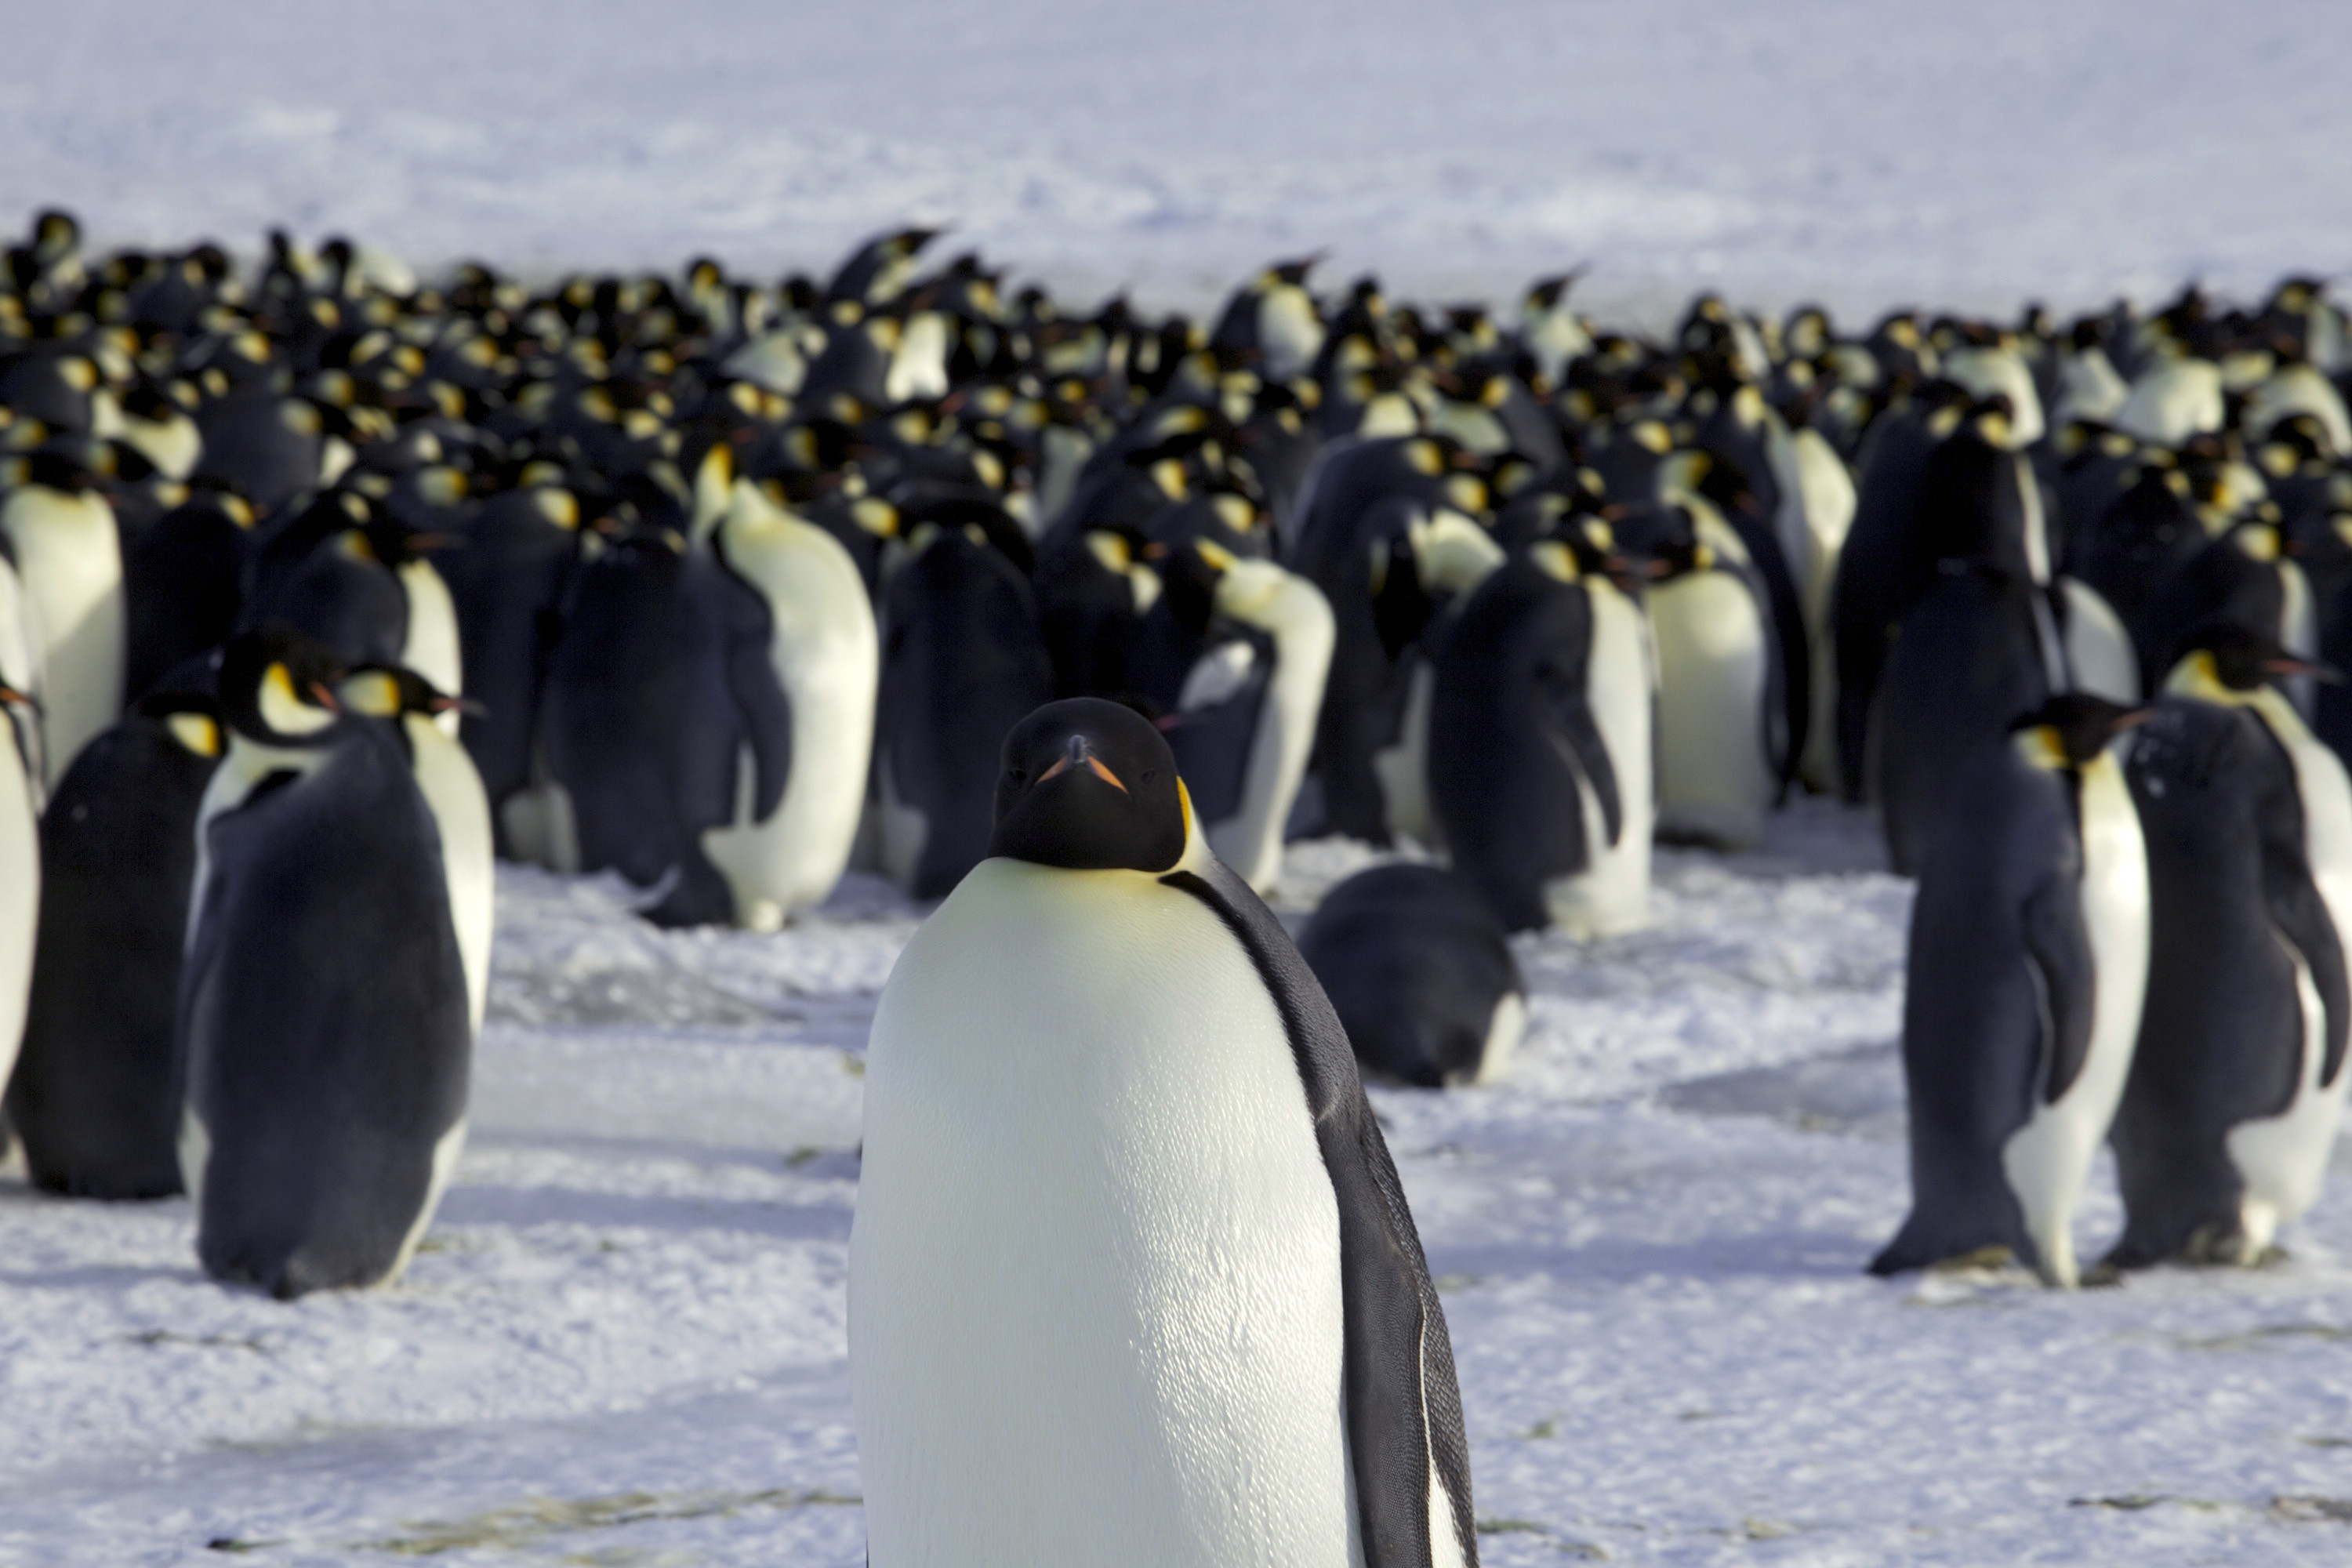 Emperor penguins are seen in Dumont d'Urville, Antarctica April 10, 2012.  REUTERS/Martin Passingham/File Photo - TM3ECAL14MQ01